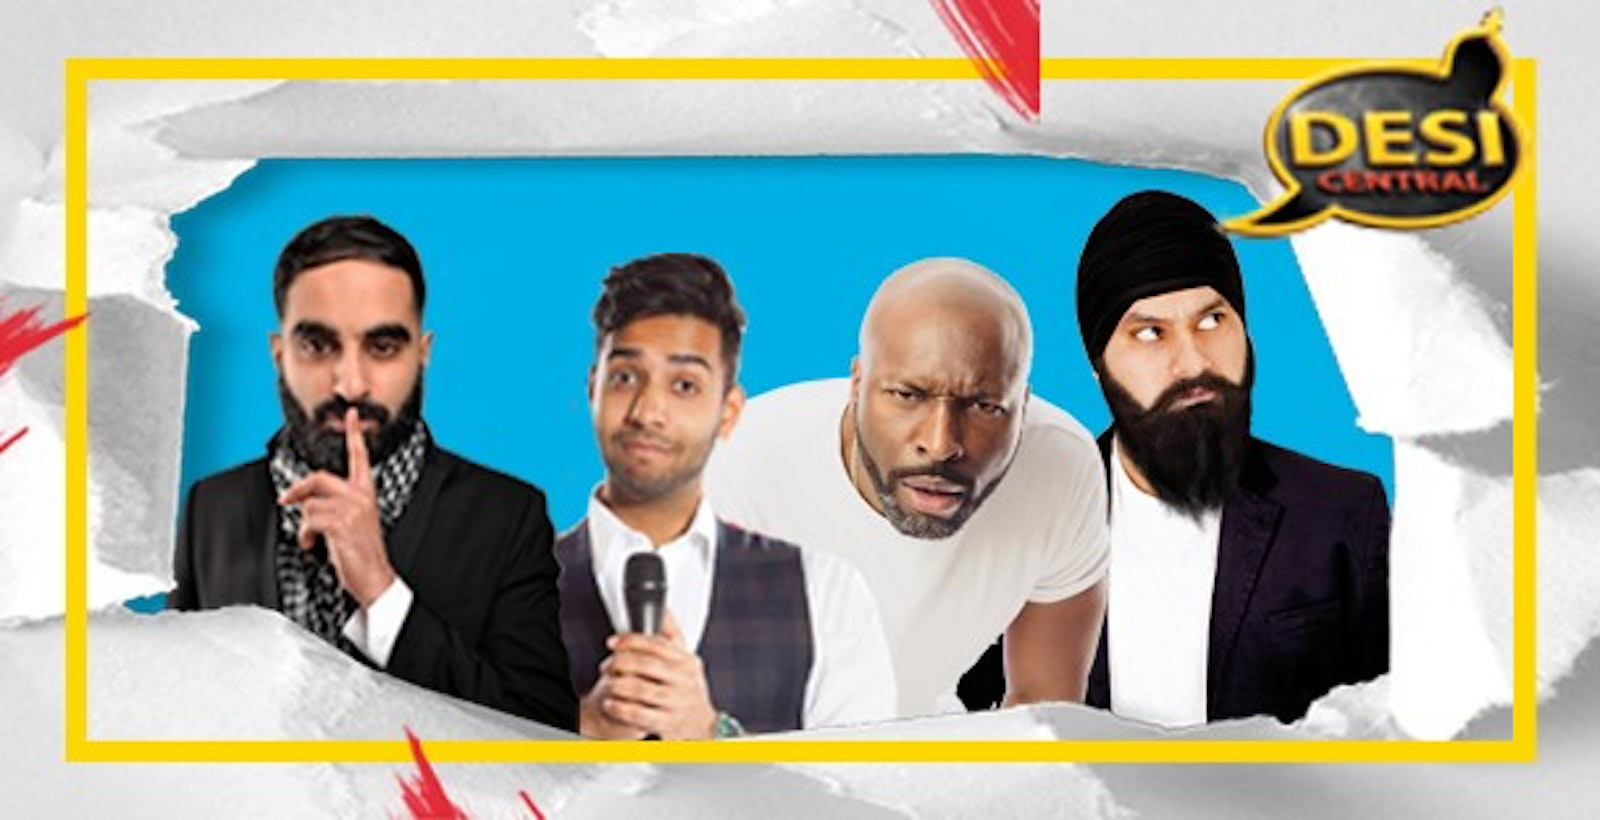 Desi Central Comedy Show : Coventry